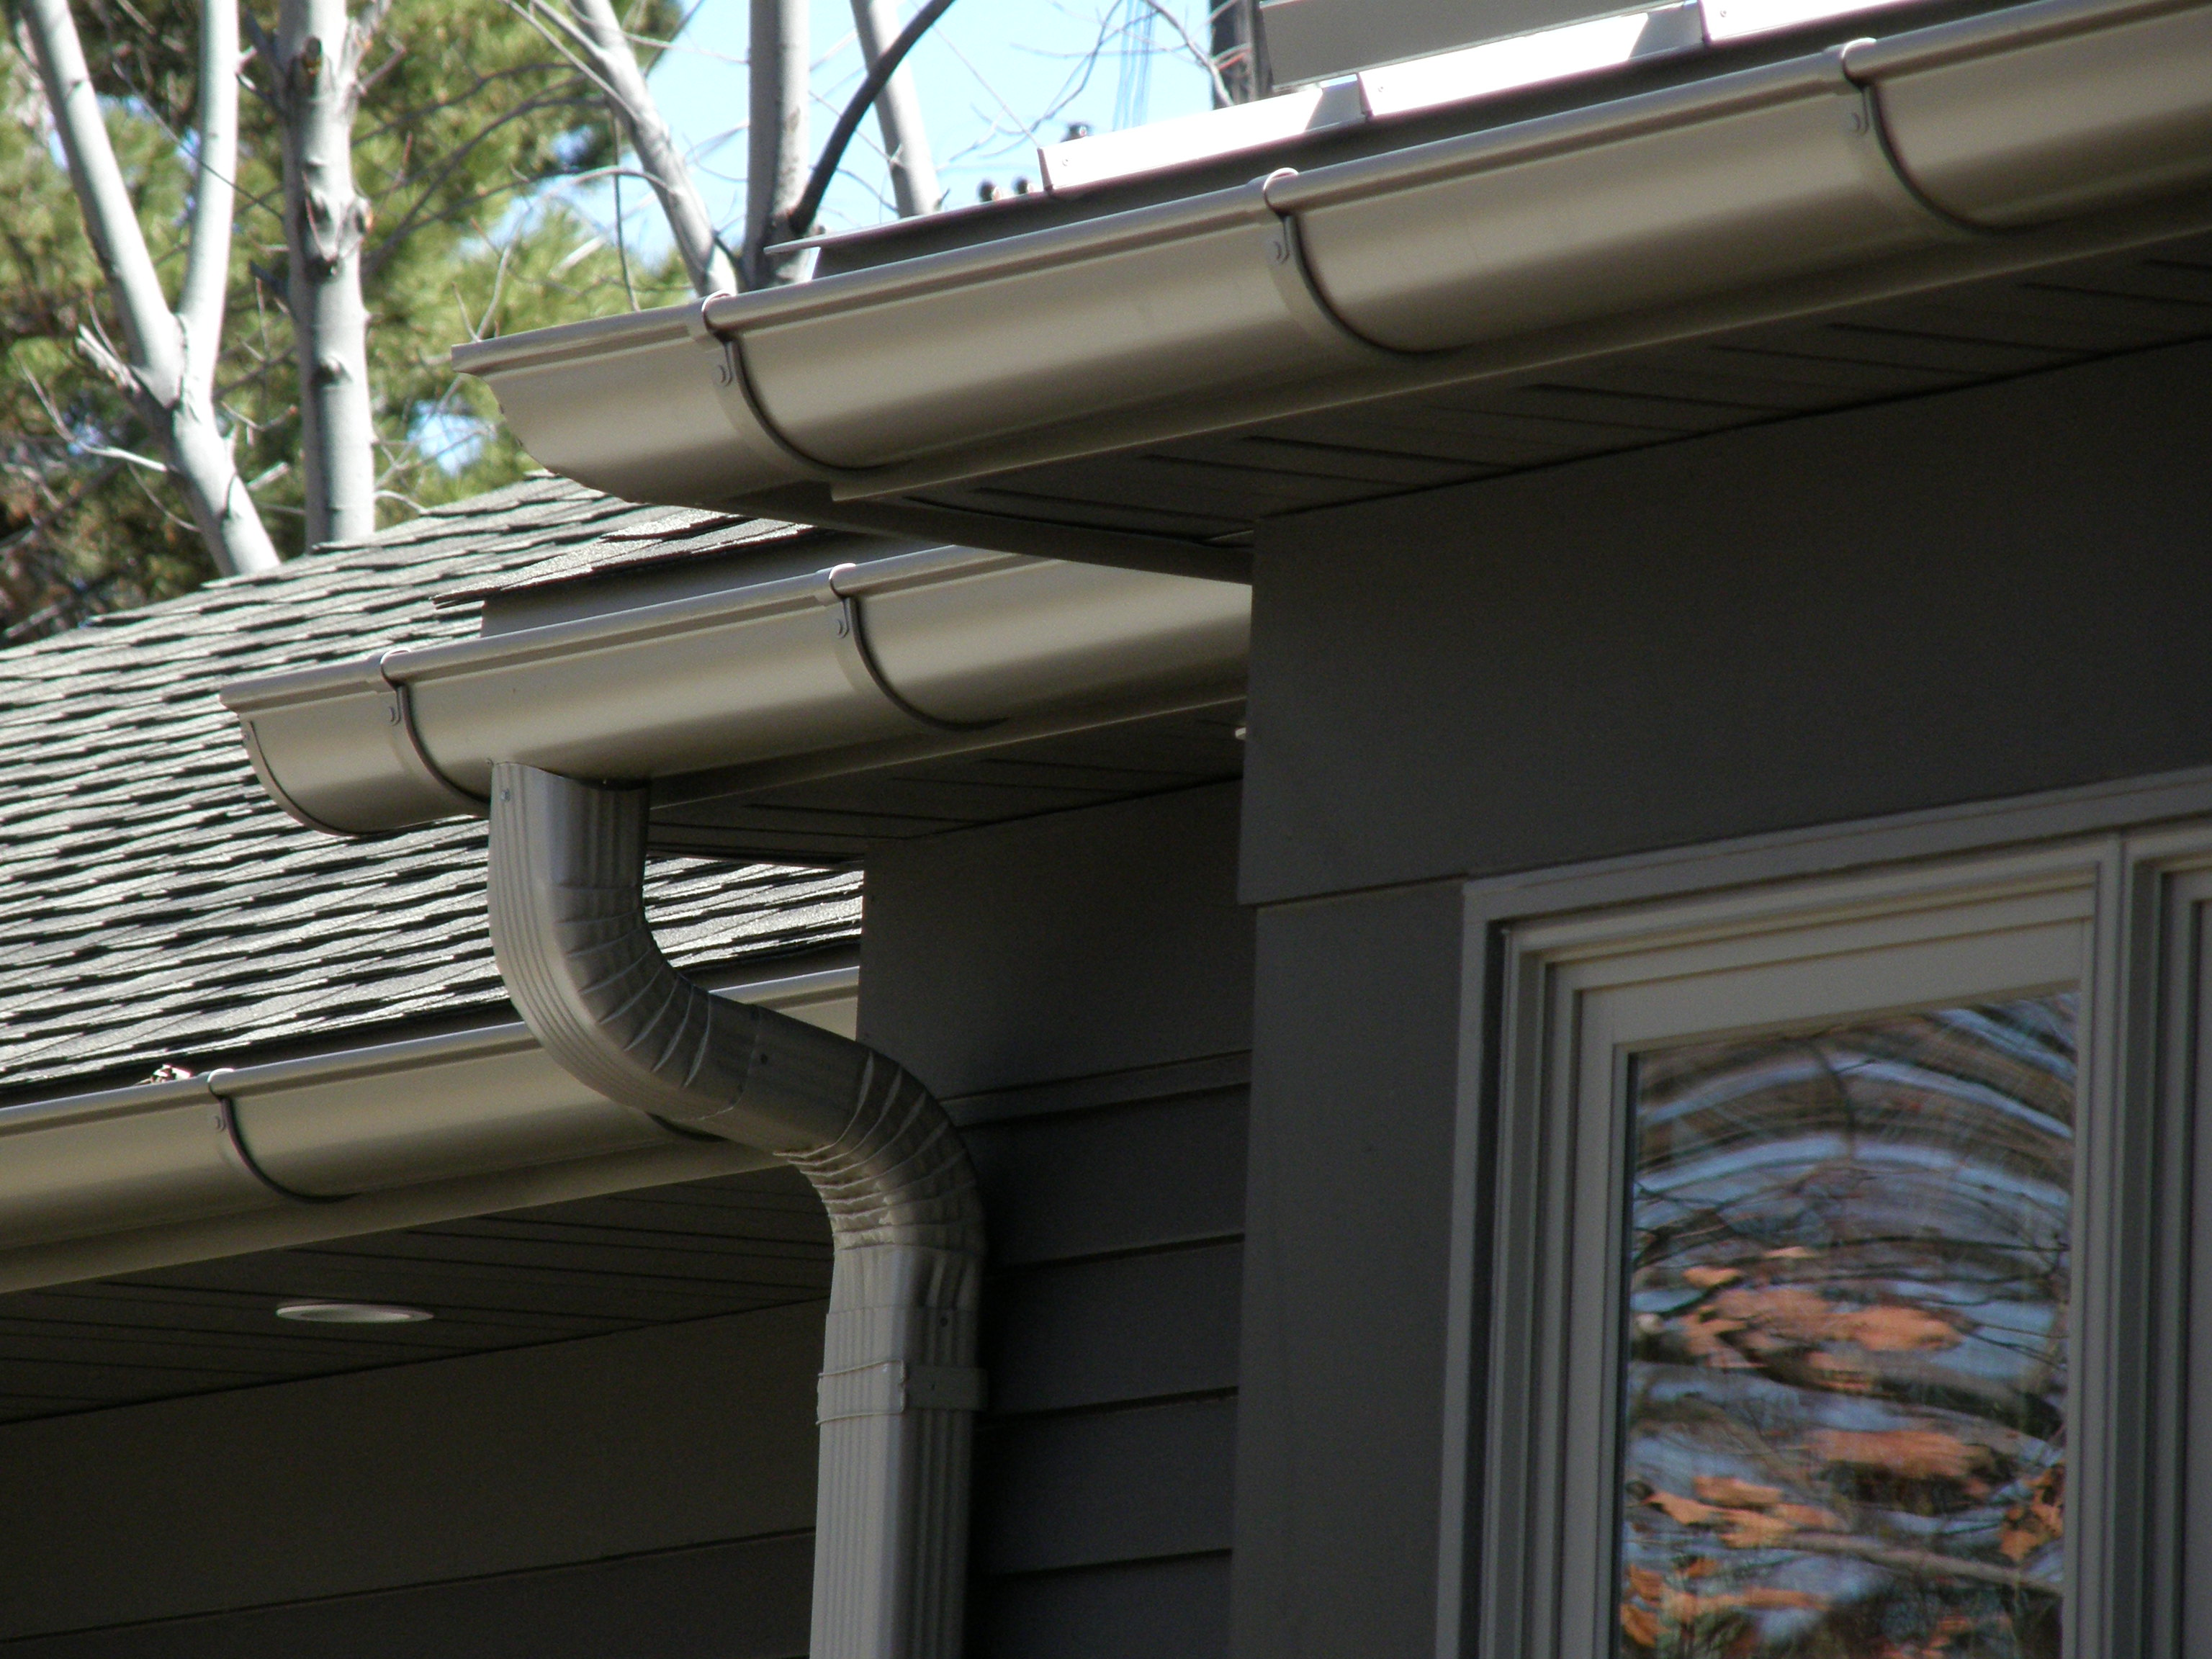 Mpls half round gutter installation for Painting aluminum gutters